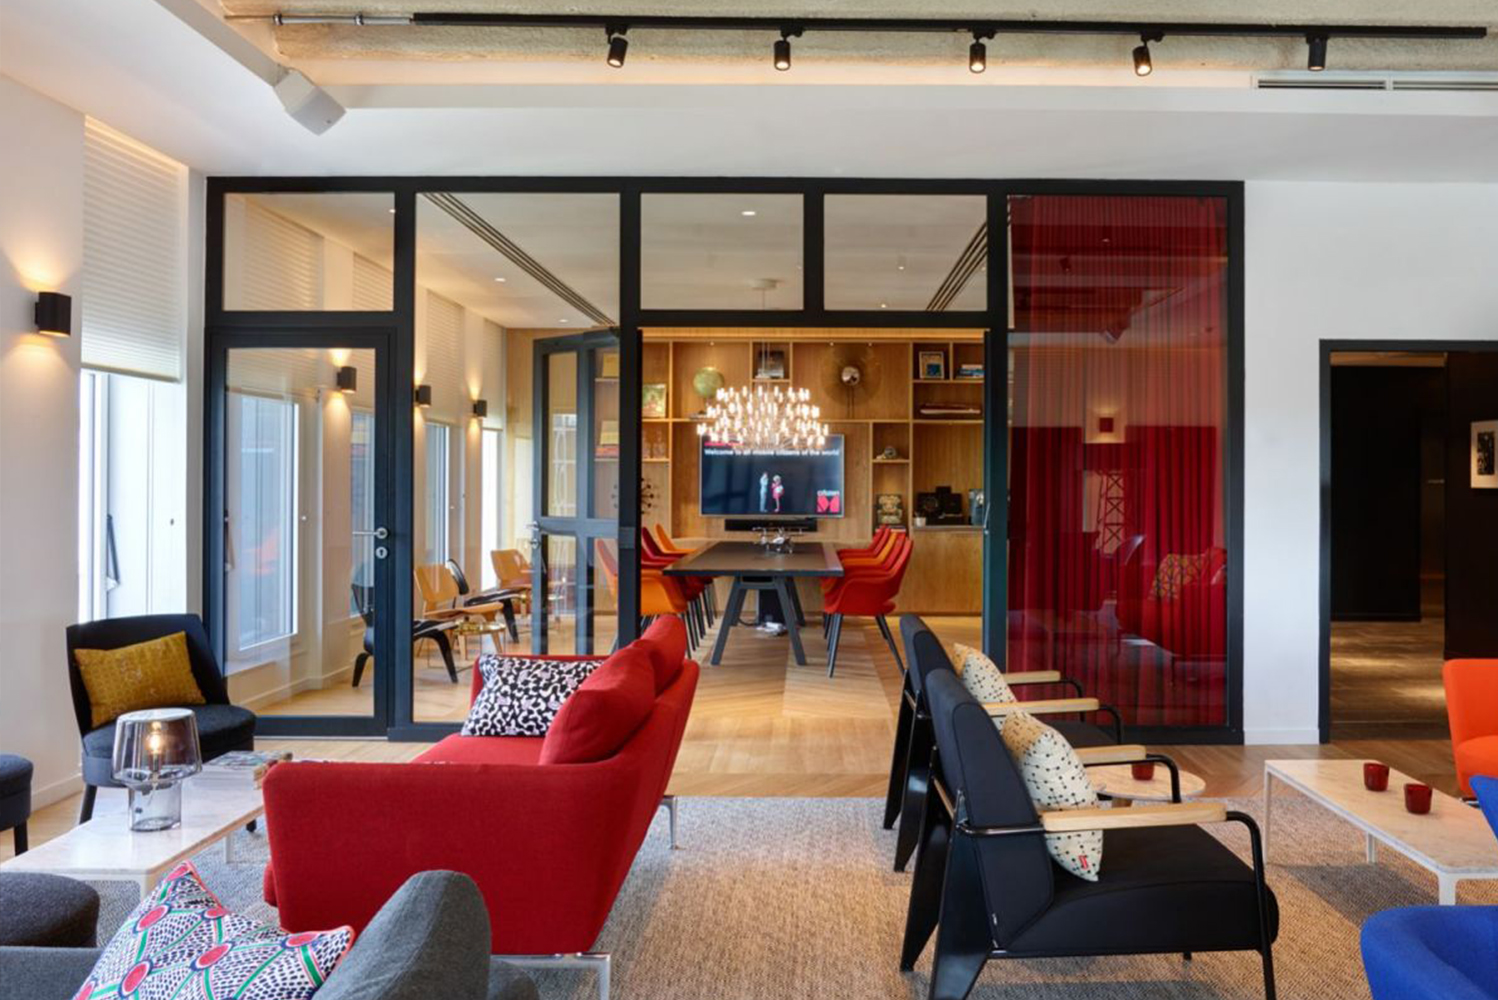 Housed in a former office block and designed by Amsterdam-based design firm Concrete, the 338-room hotel is located near the Gare de Lyon train station.